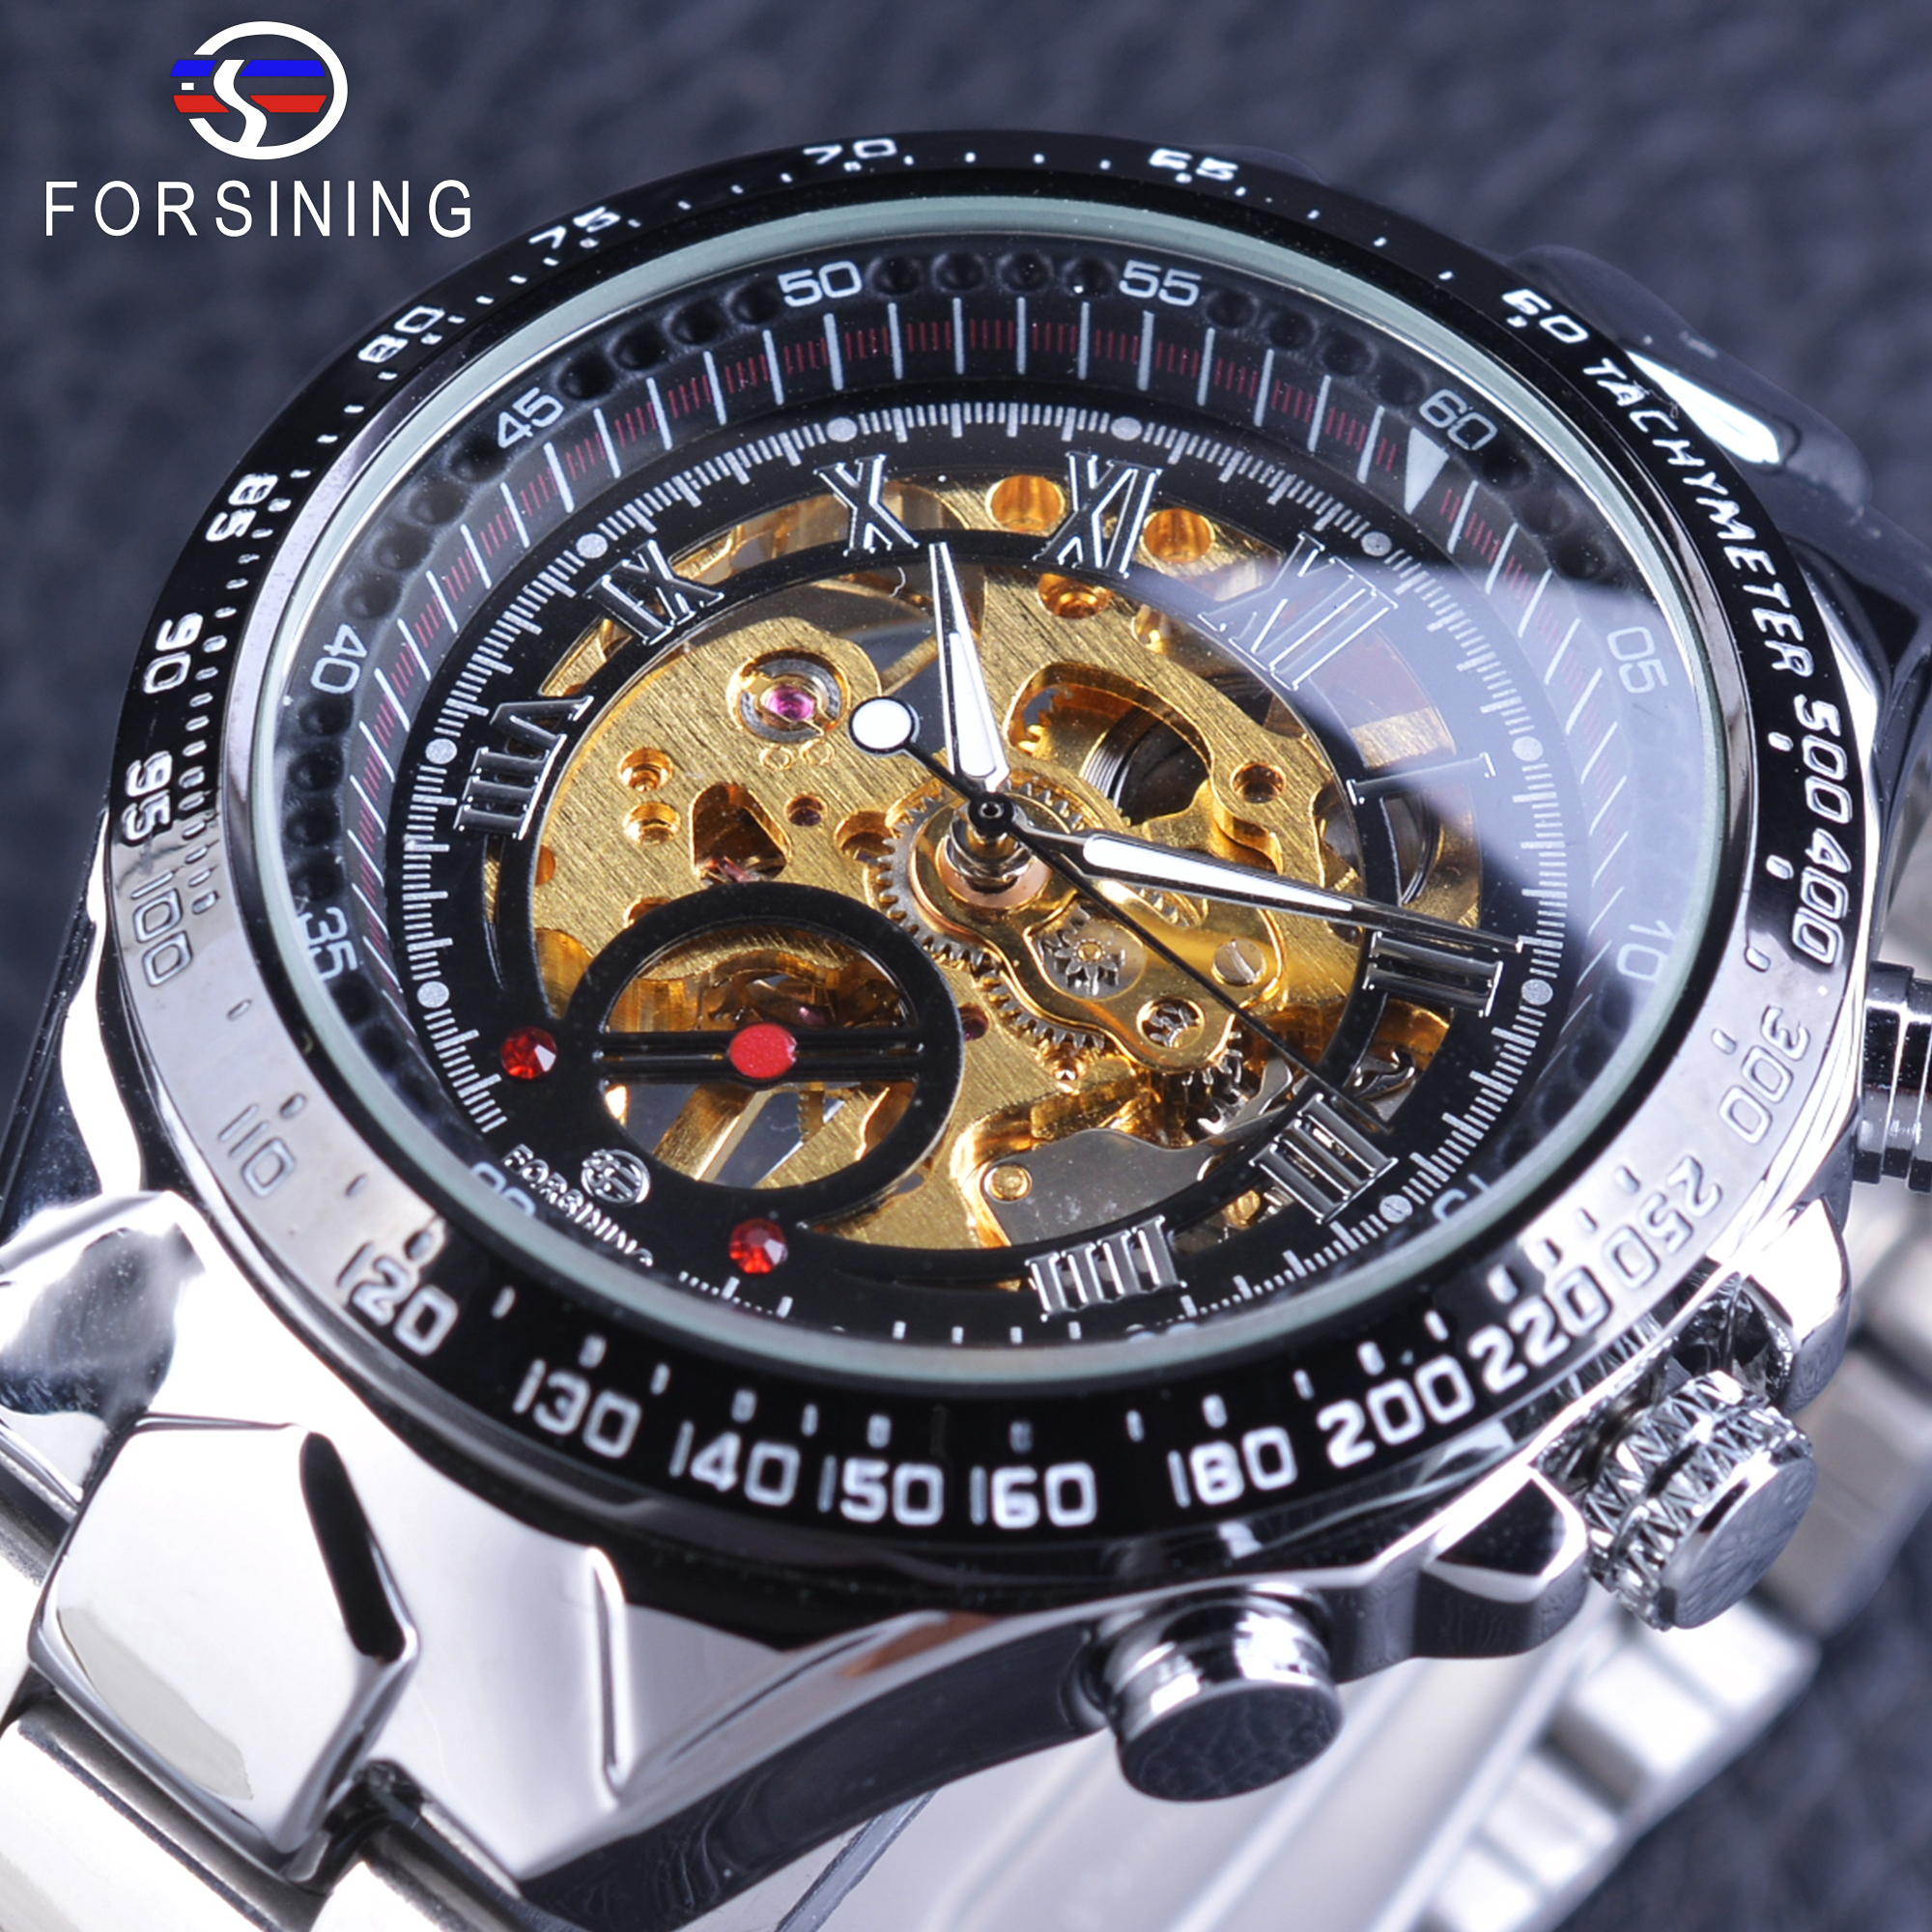 lightbox corniche image online heritage boutique front watches shop waterproof in open